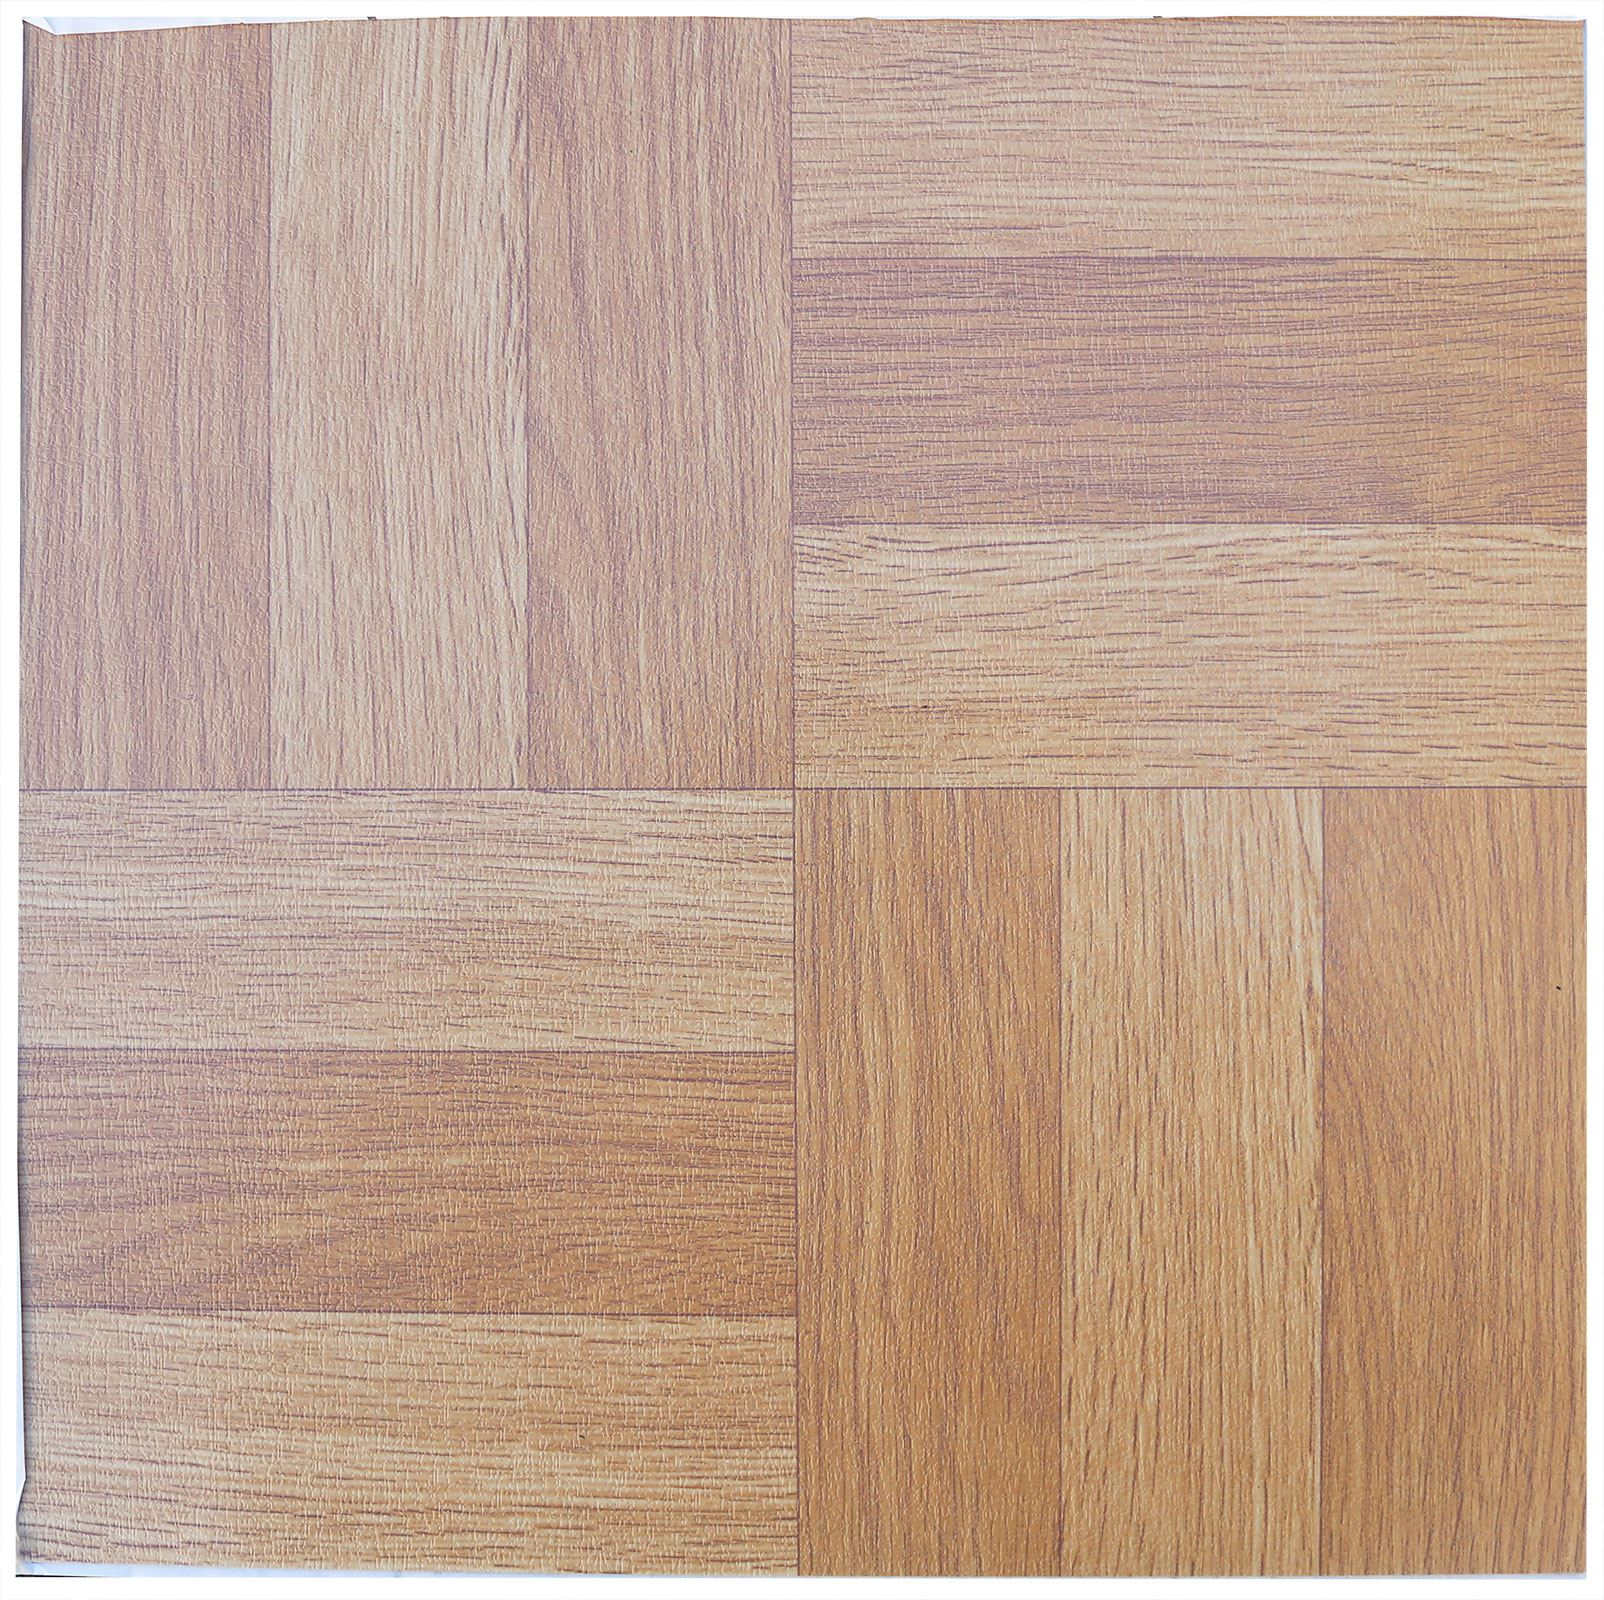 Parquet Adhesif Vinyl Floor Tiles Wood Effect Parquet Panels Squares Self